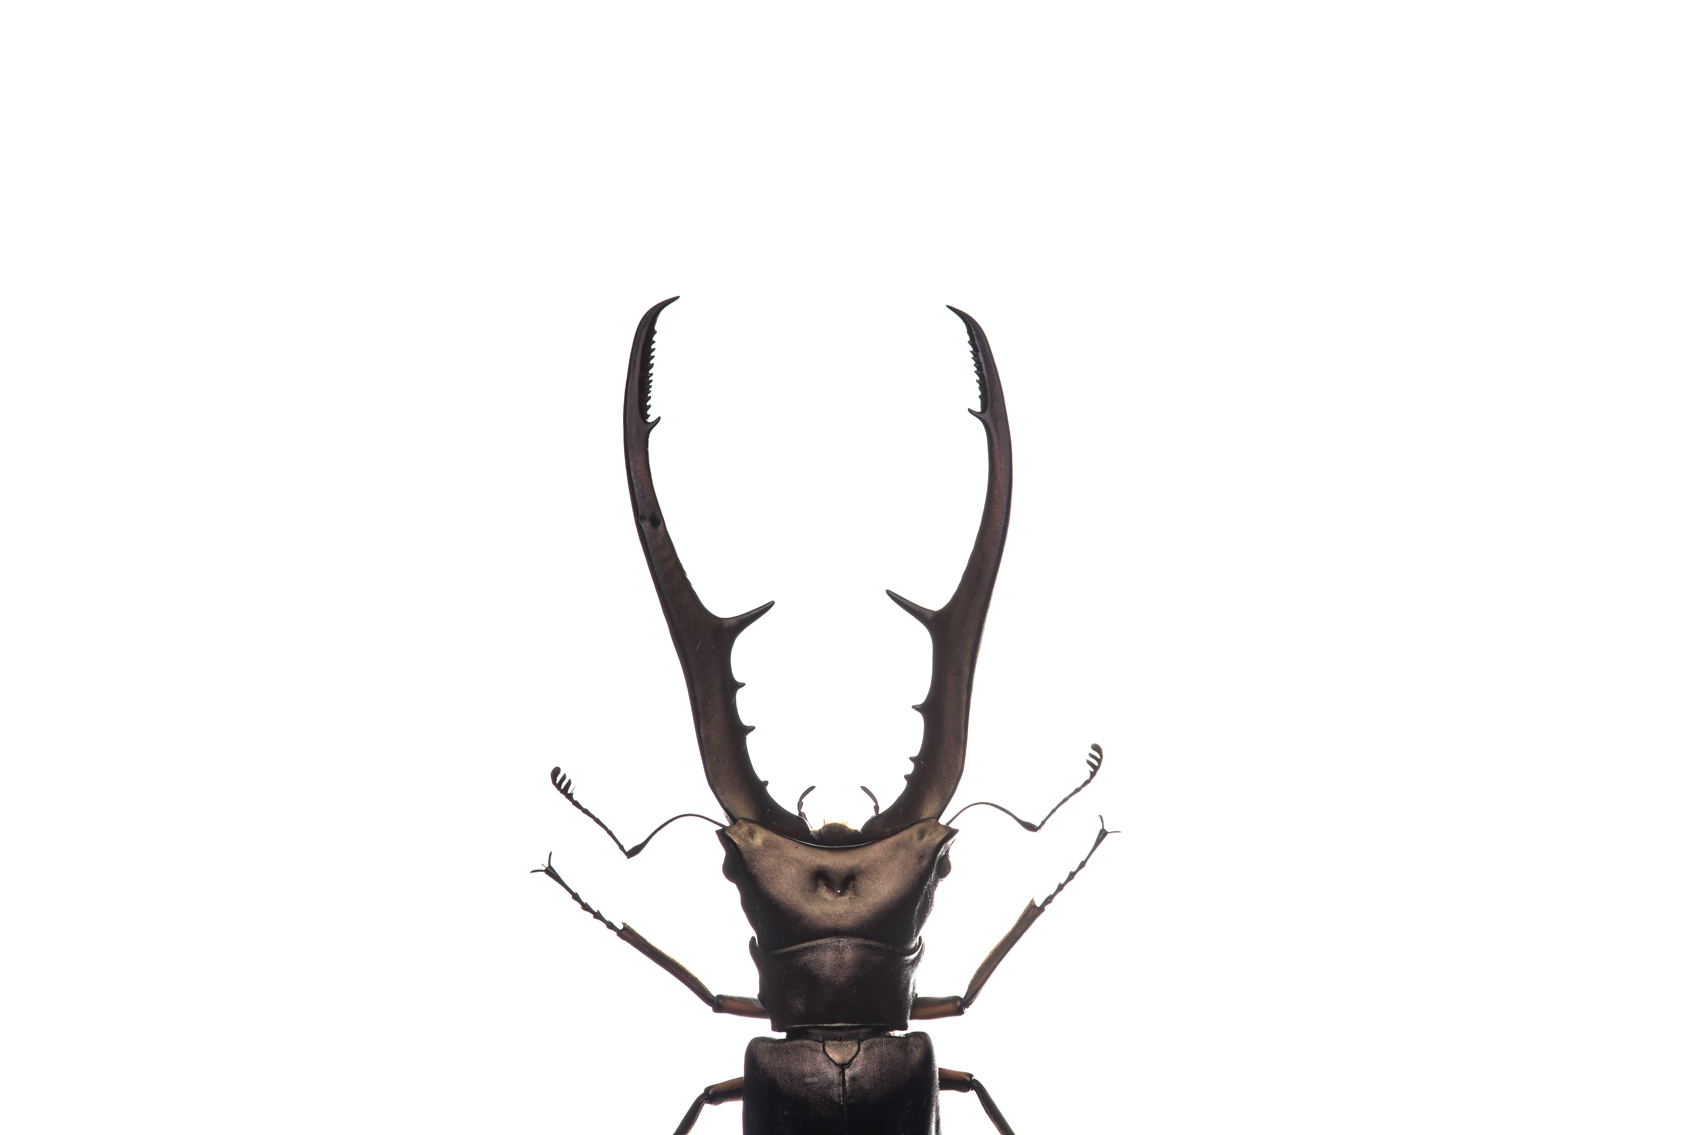 Beetle, Royal Ontario Museum specimen © David Coulson